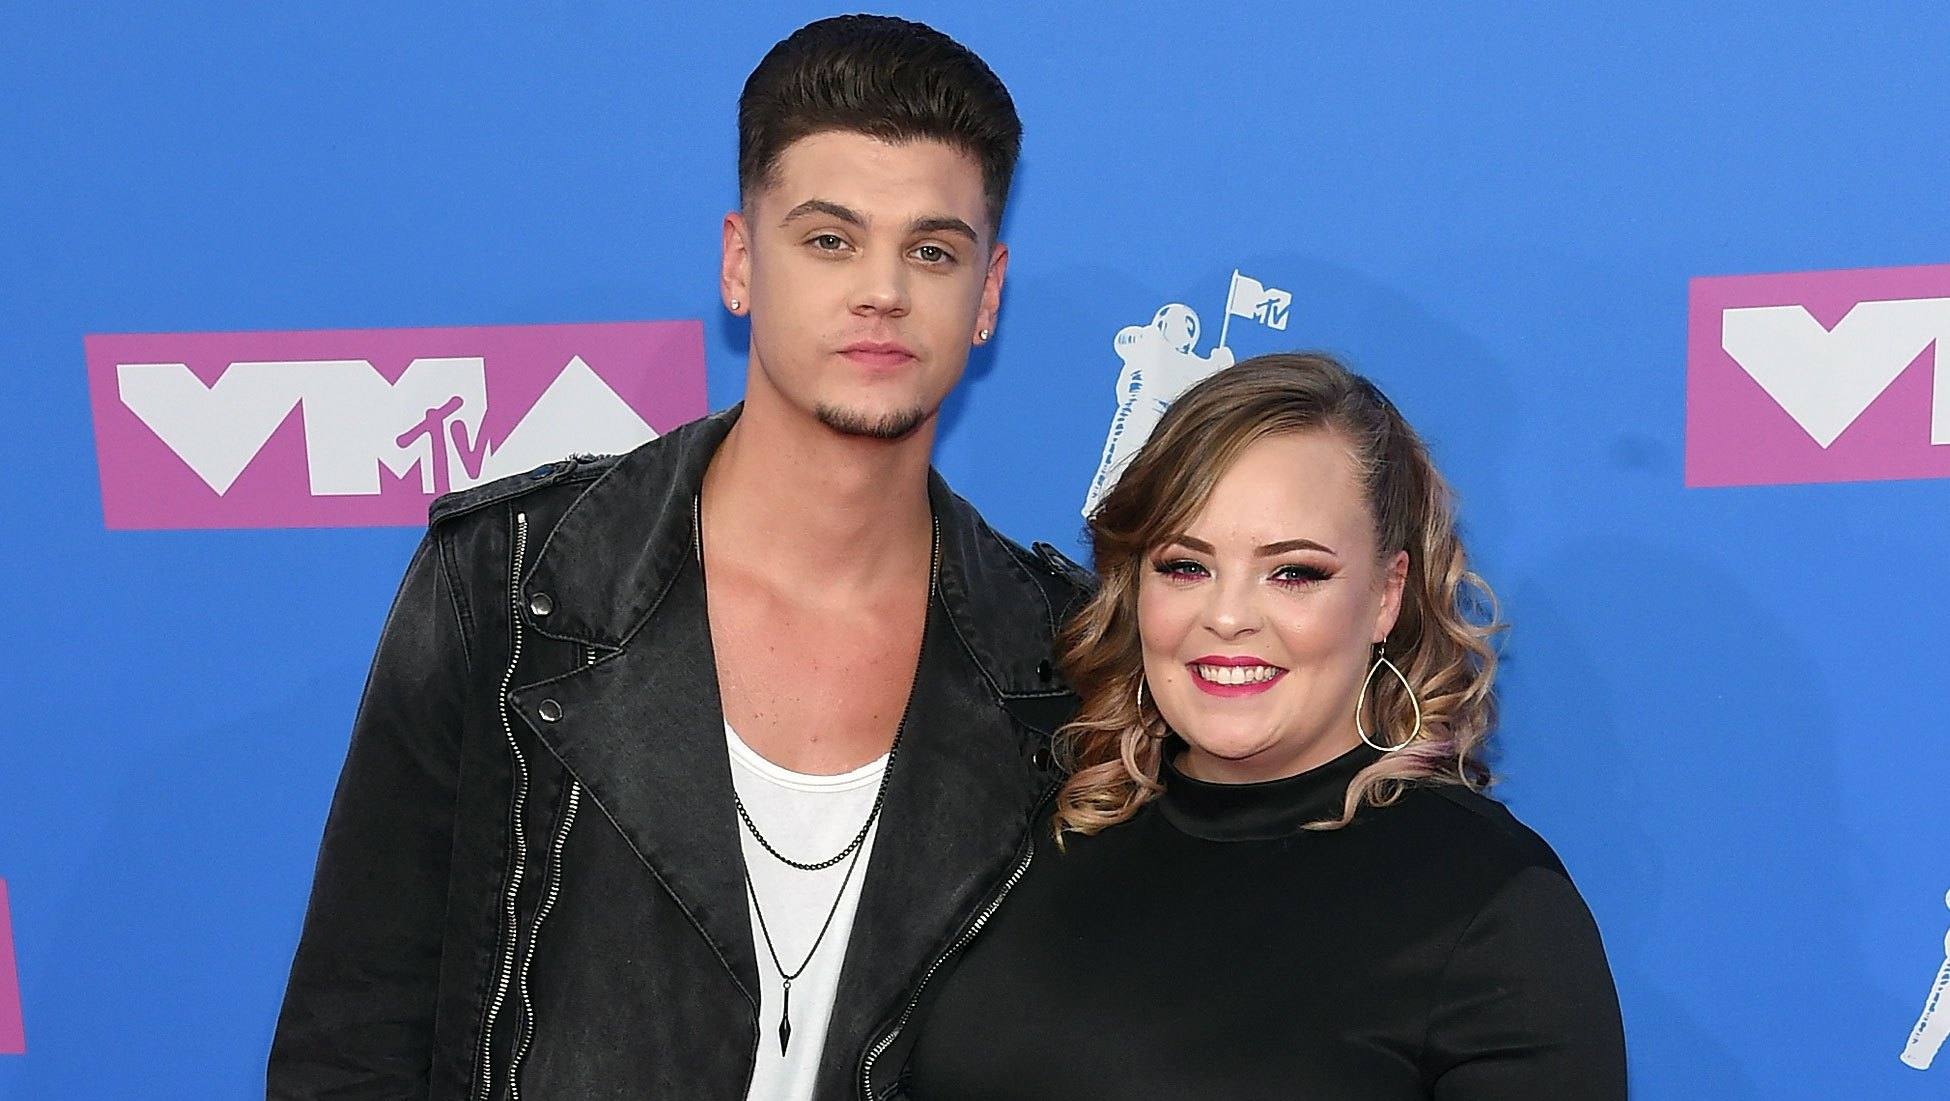 Tyler Baltierra Reflects on Putting 10-Year-Old Daughter With Catelynn Lowell Up For Adoption 'We Just Cried' 2018 MTV Video Music Awards